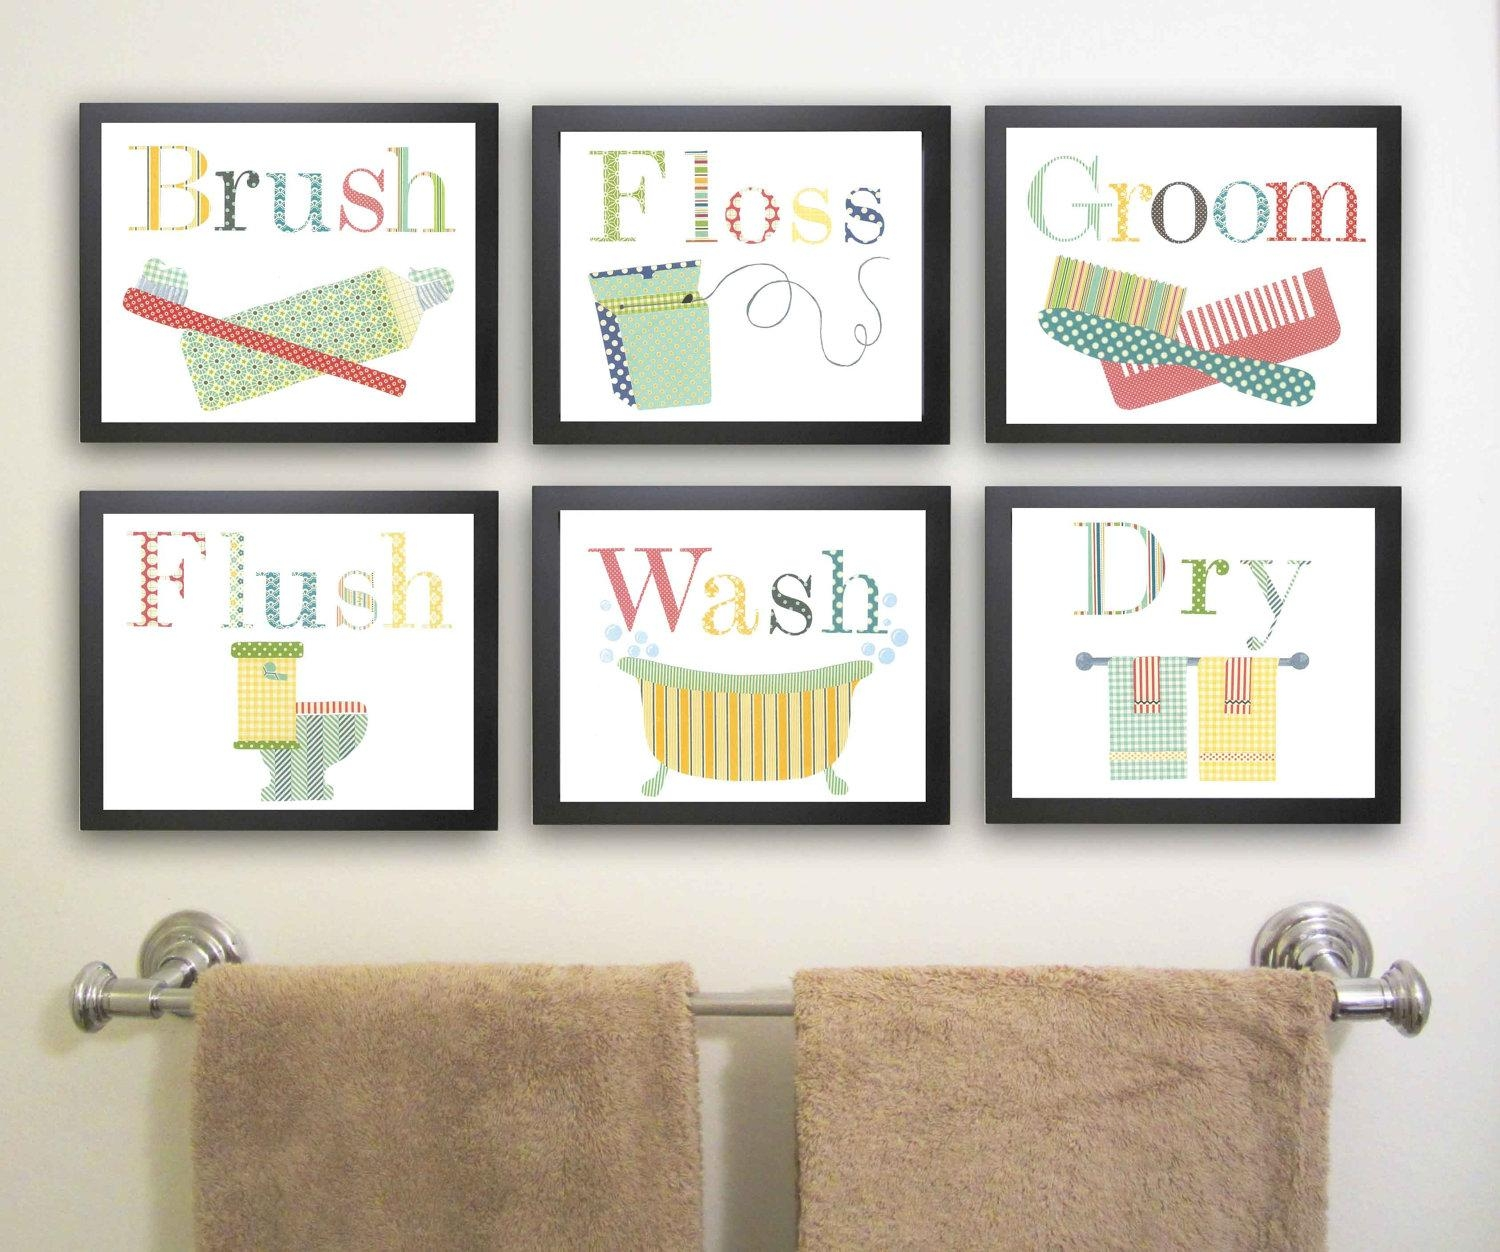 Wall Art Ideas Design : Unique Brush Art For Bathroom Wall Floss Intended For Contemporary Bathroom Wall Art (Image 18 of 20)